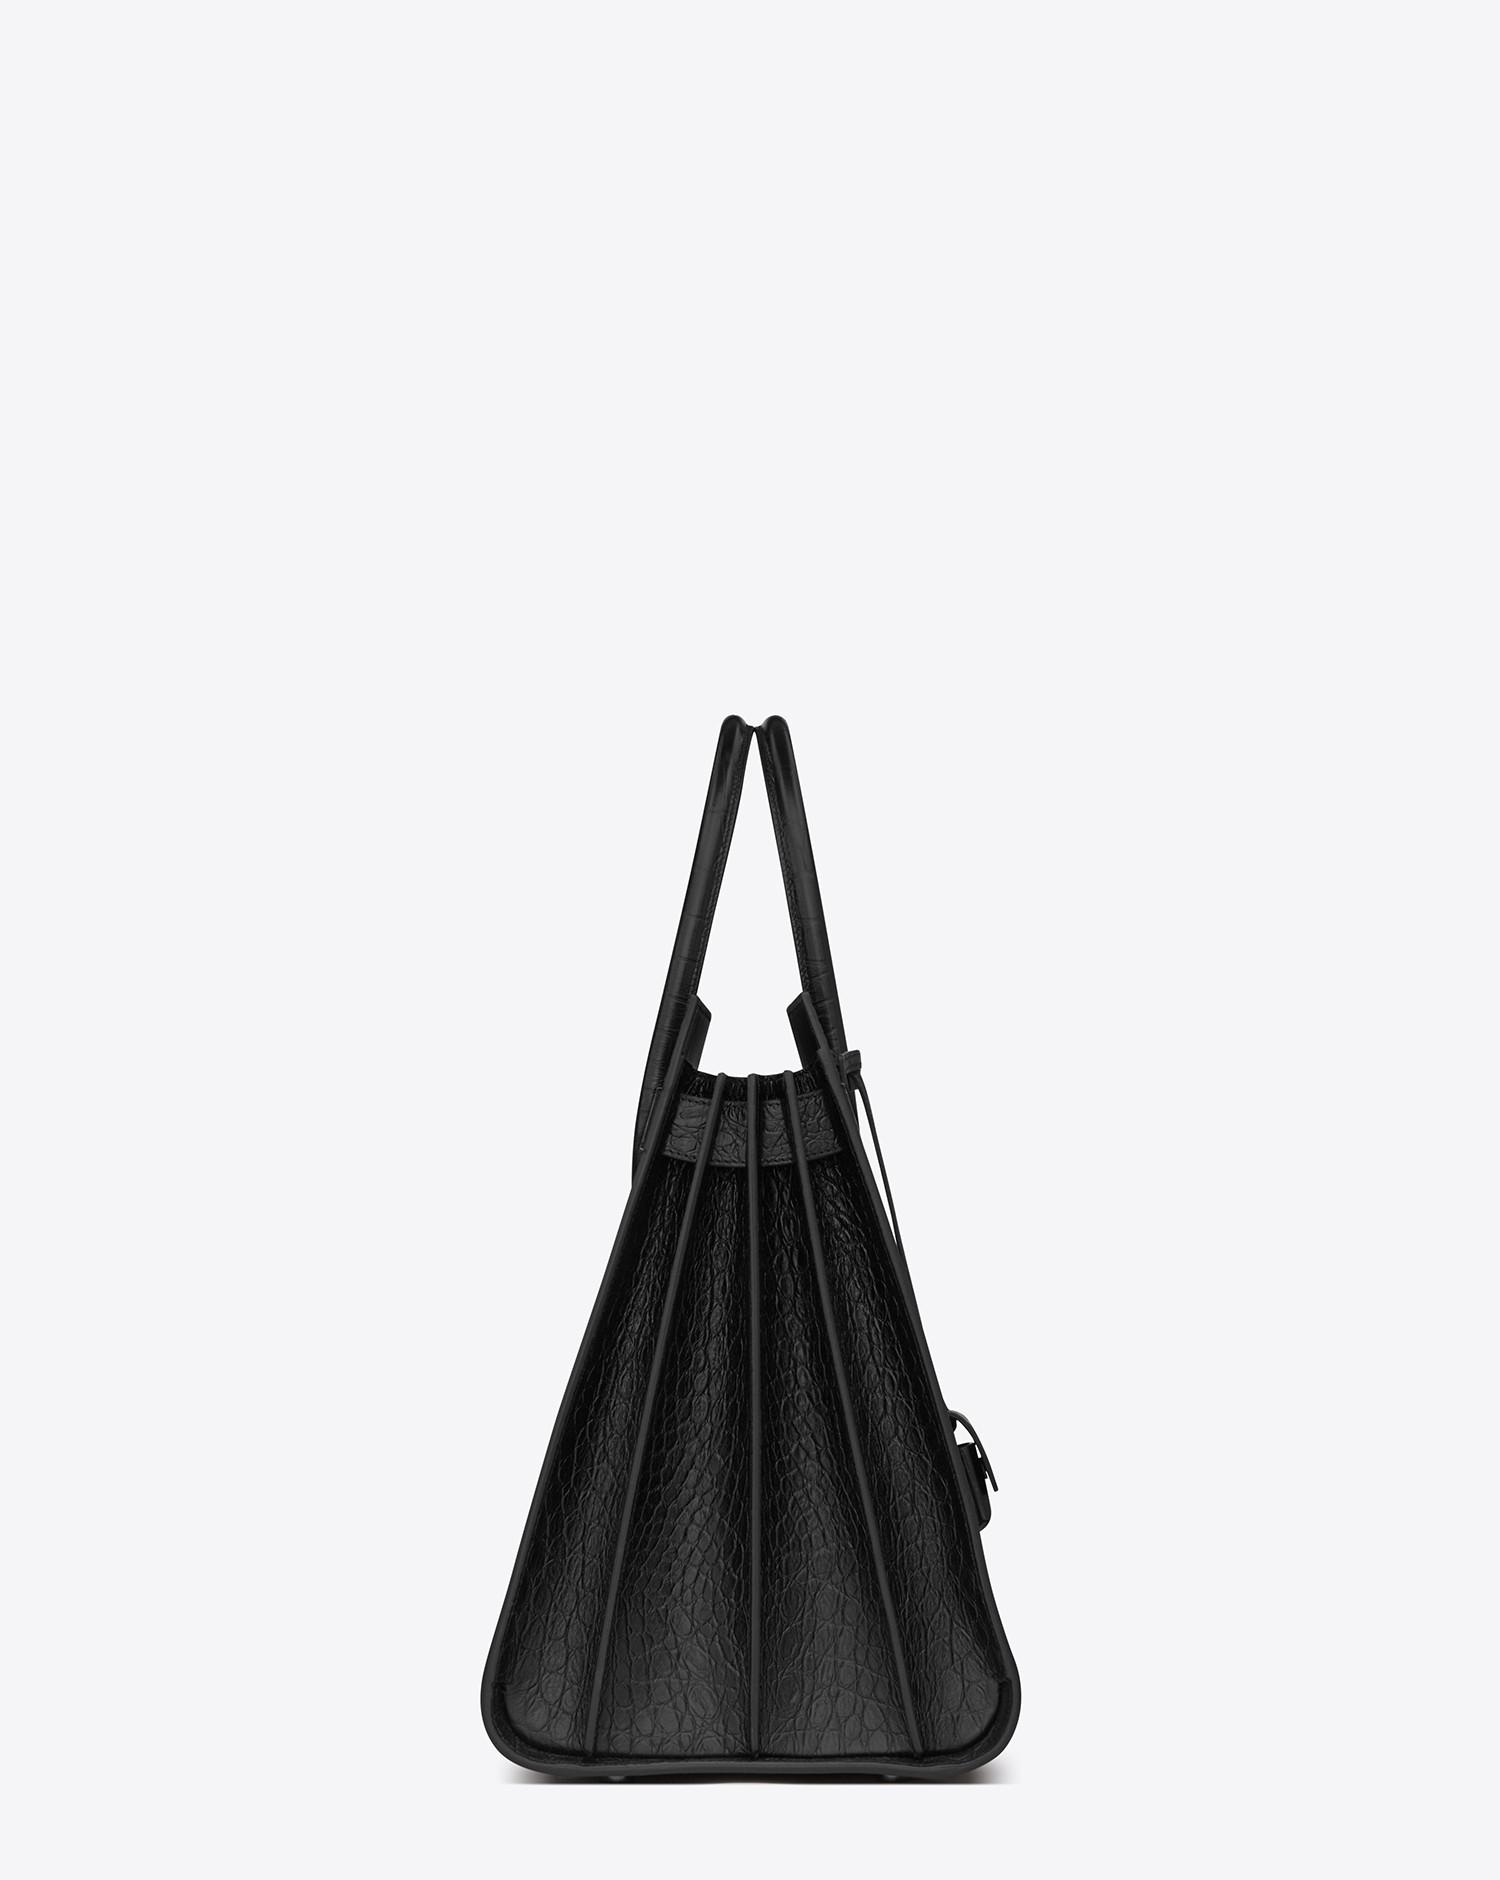 41899cef8fc Lyst - Saint Laurent Large Sac De Jour Carry All Bag In Black ...